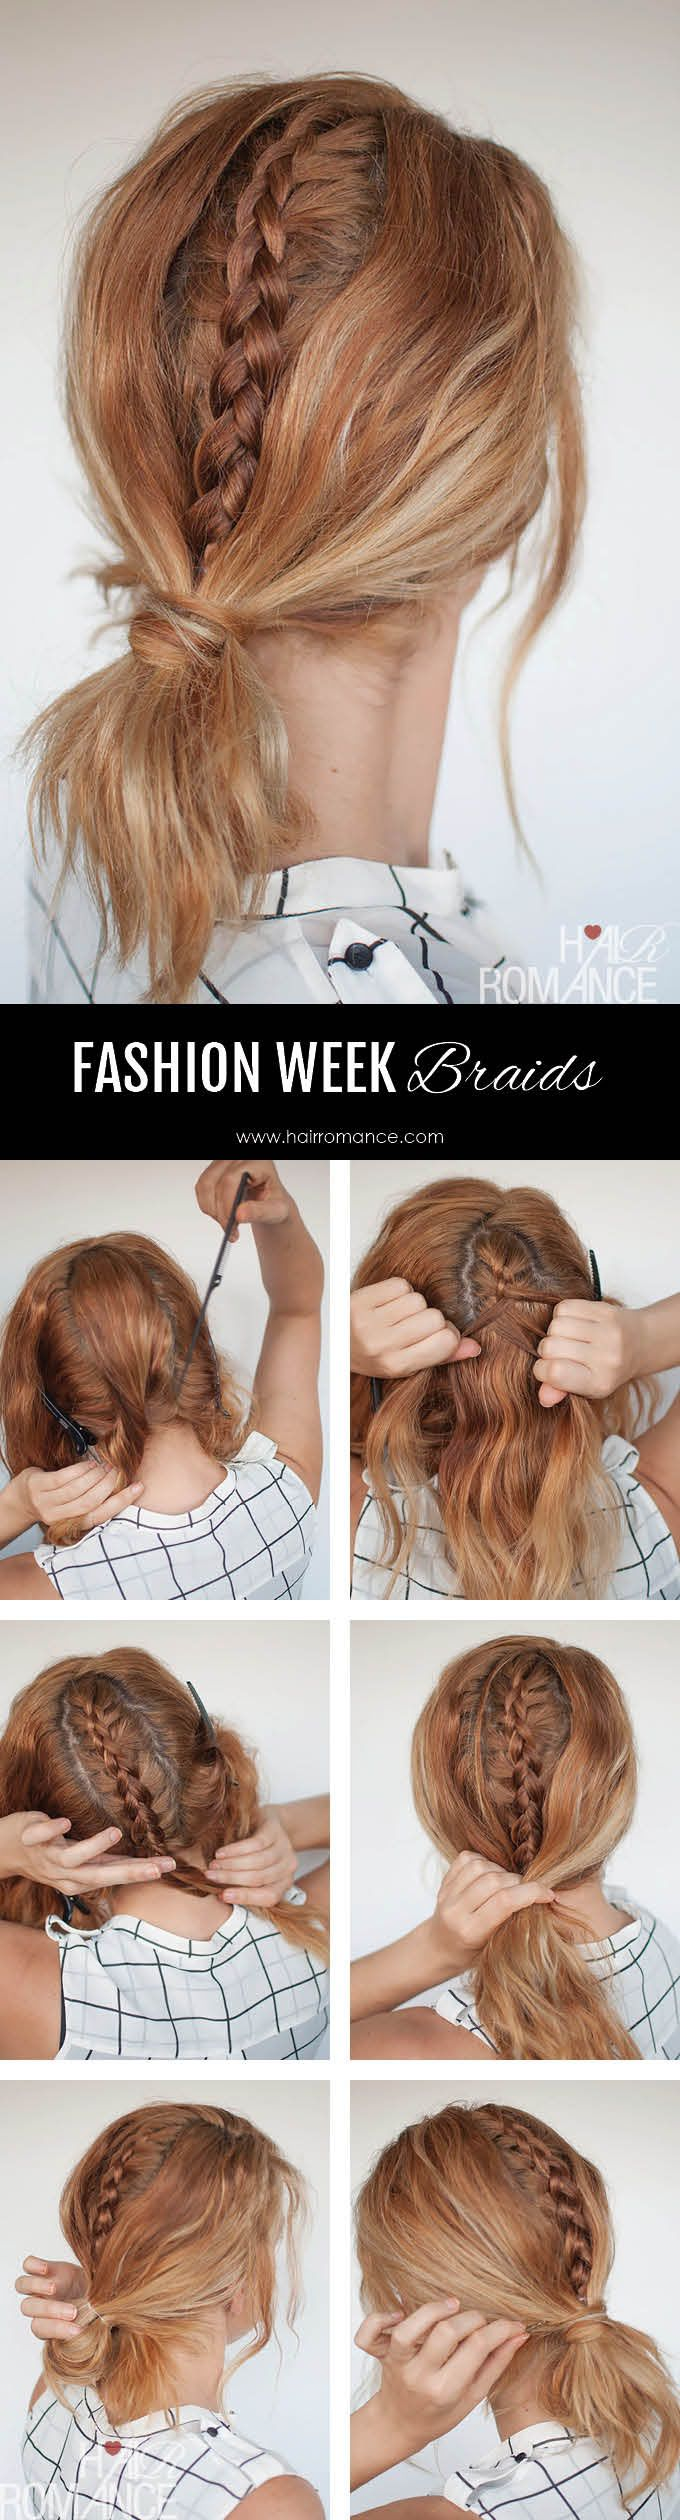 Fashion week braids